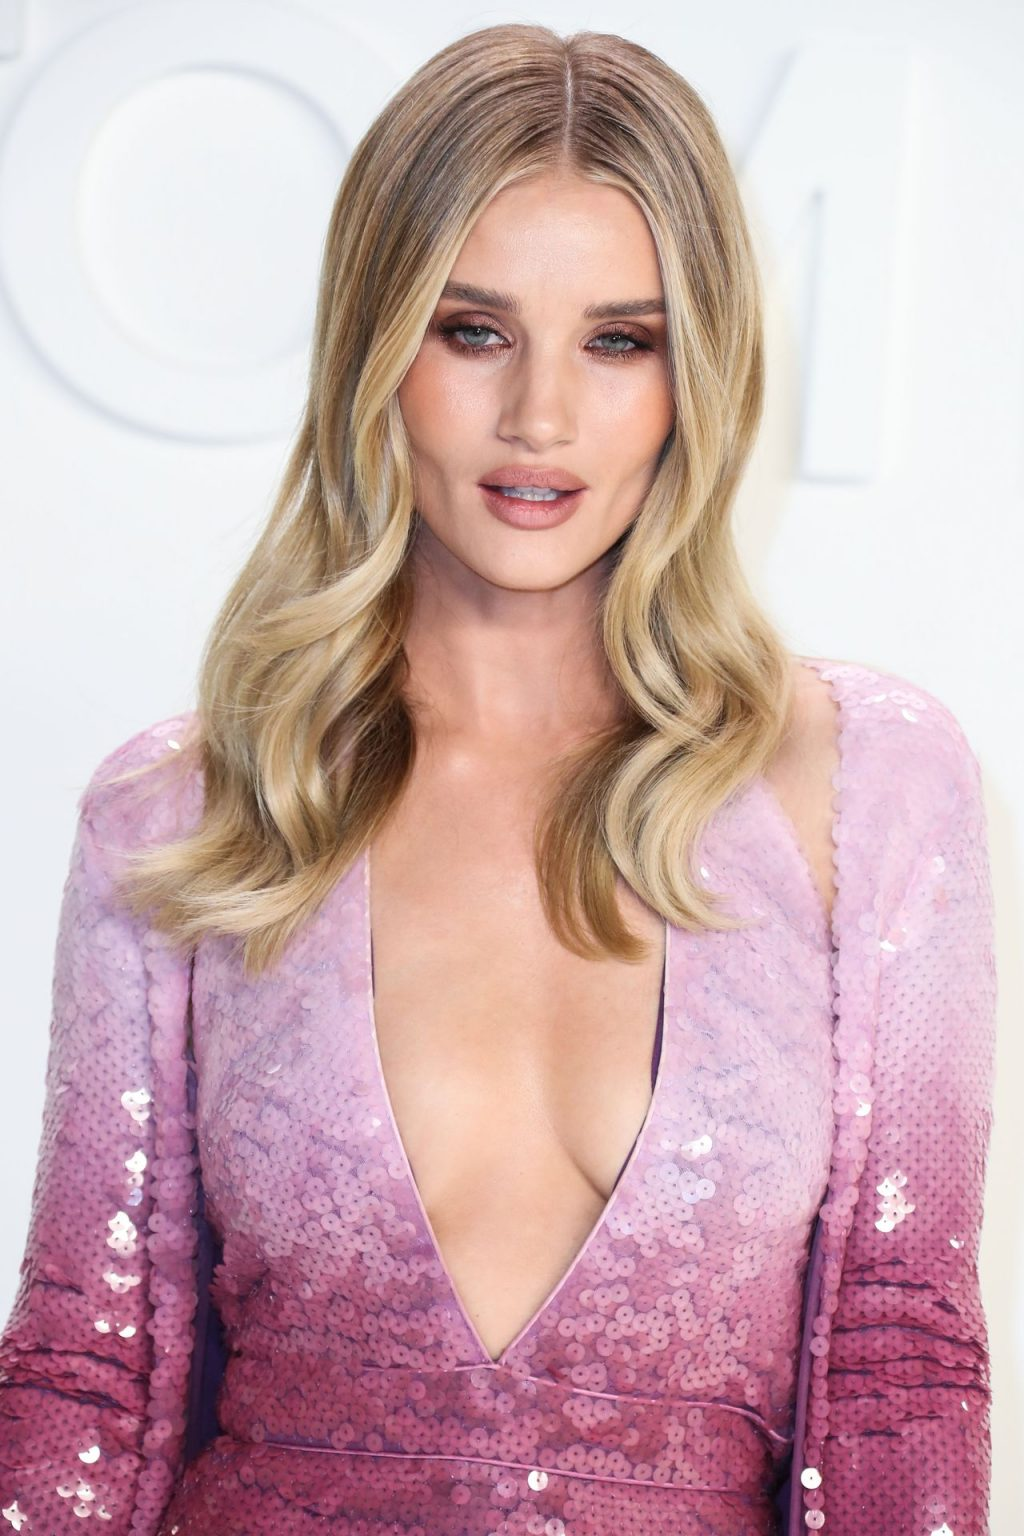 Rosie Huntington Whiteley Sexy The Fappening Blog 88 1024x1536 - Rosie Huntington-Whiteley Shows Her Cleavage at the Tom Ford Fashion Show (115 Photos)